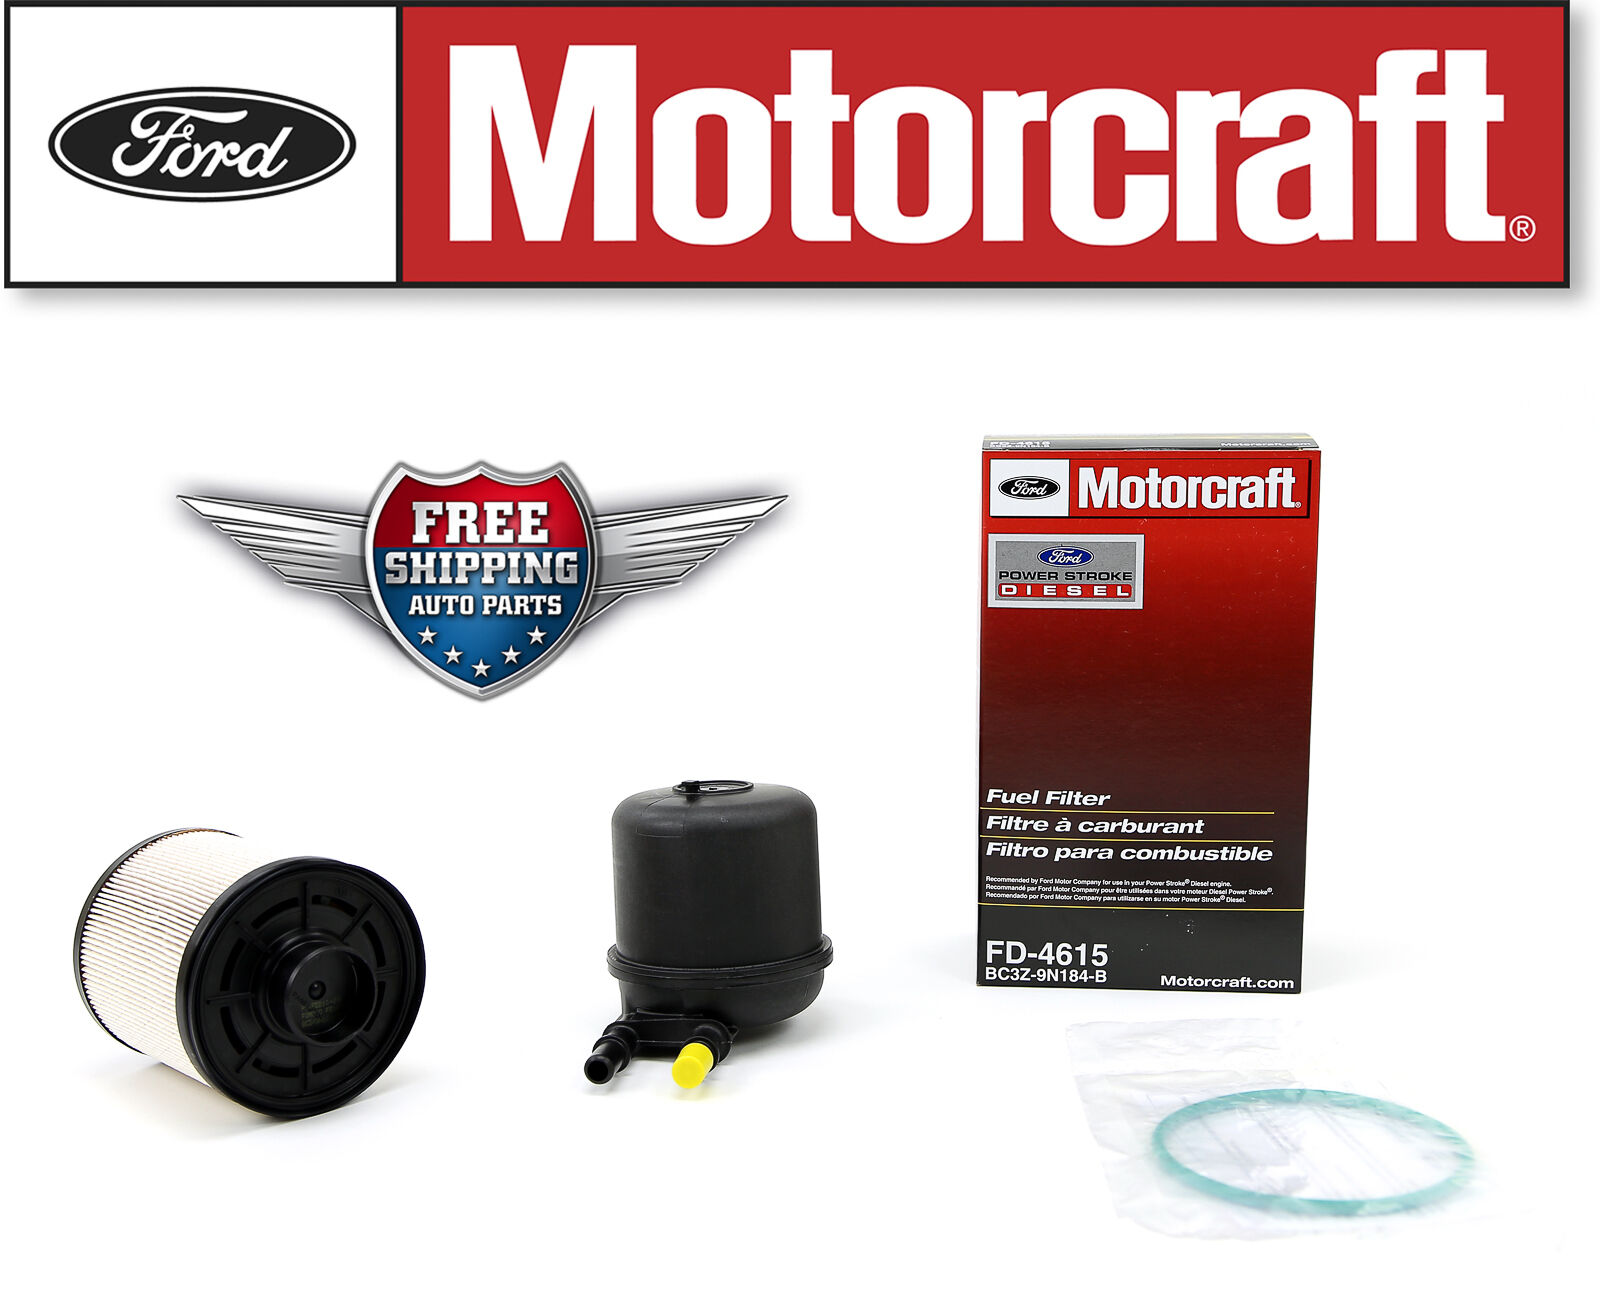 Motorcraft Fuel Filter Fd4615 2011 2013 Ford F250 F350 F450 F550 67 Housing 1 Of 3only Available